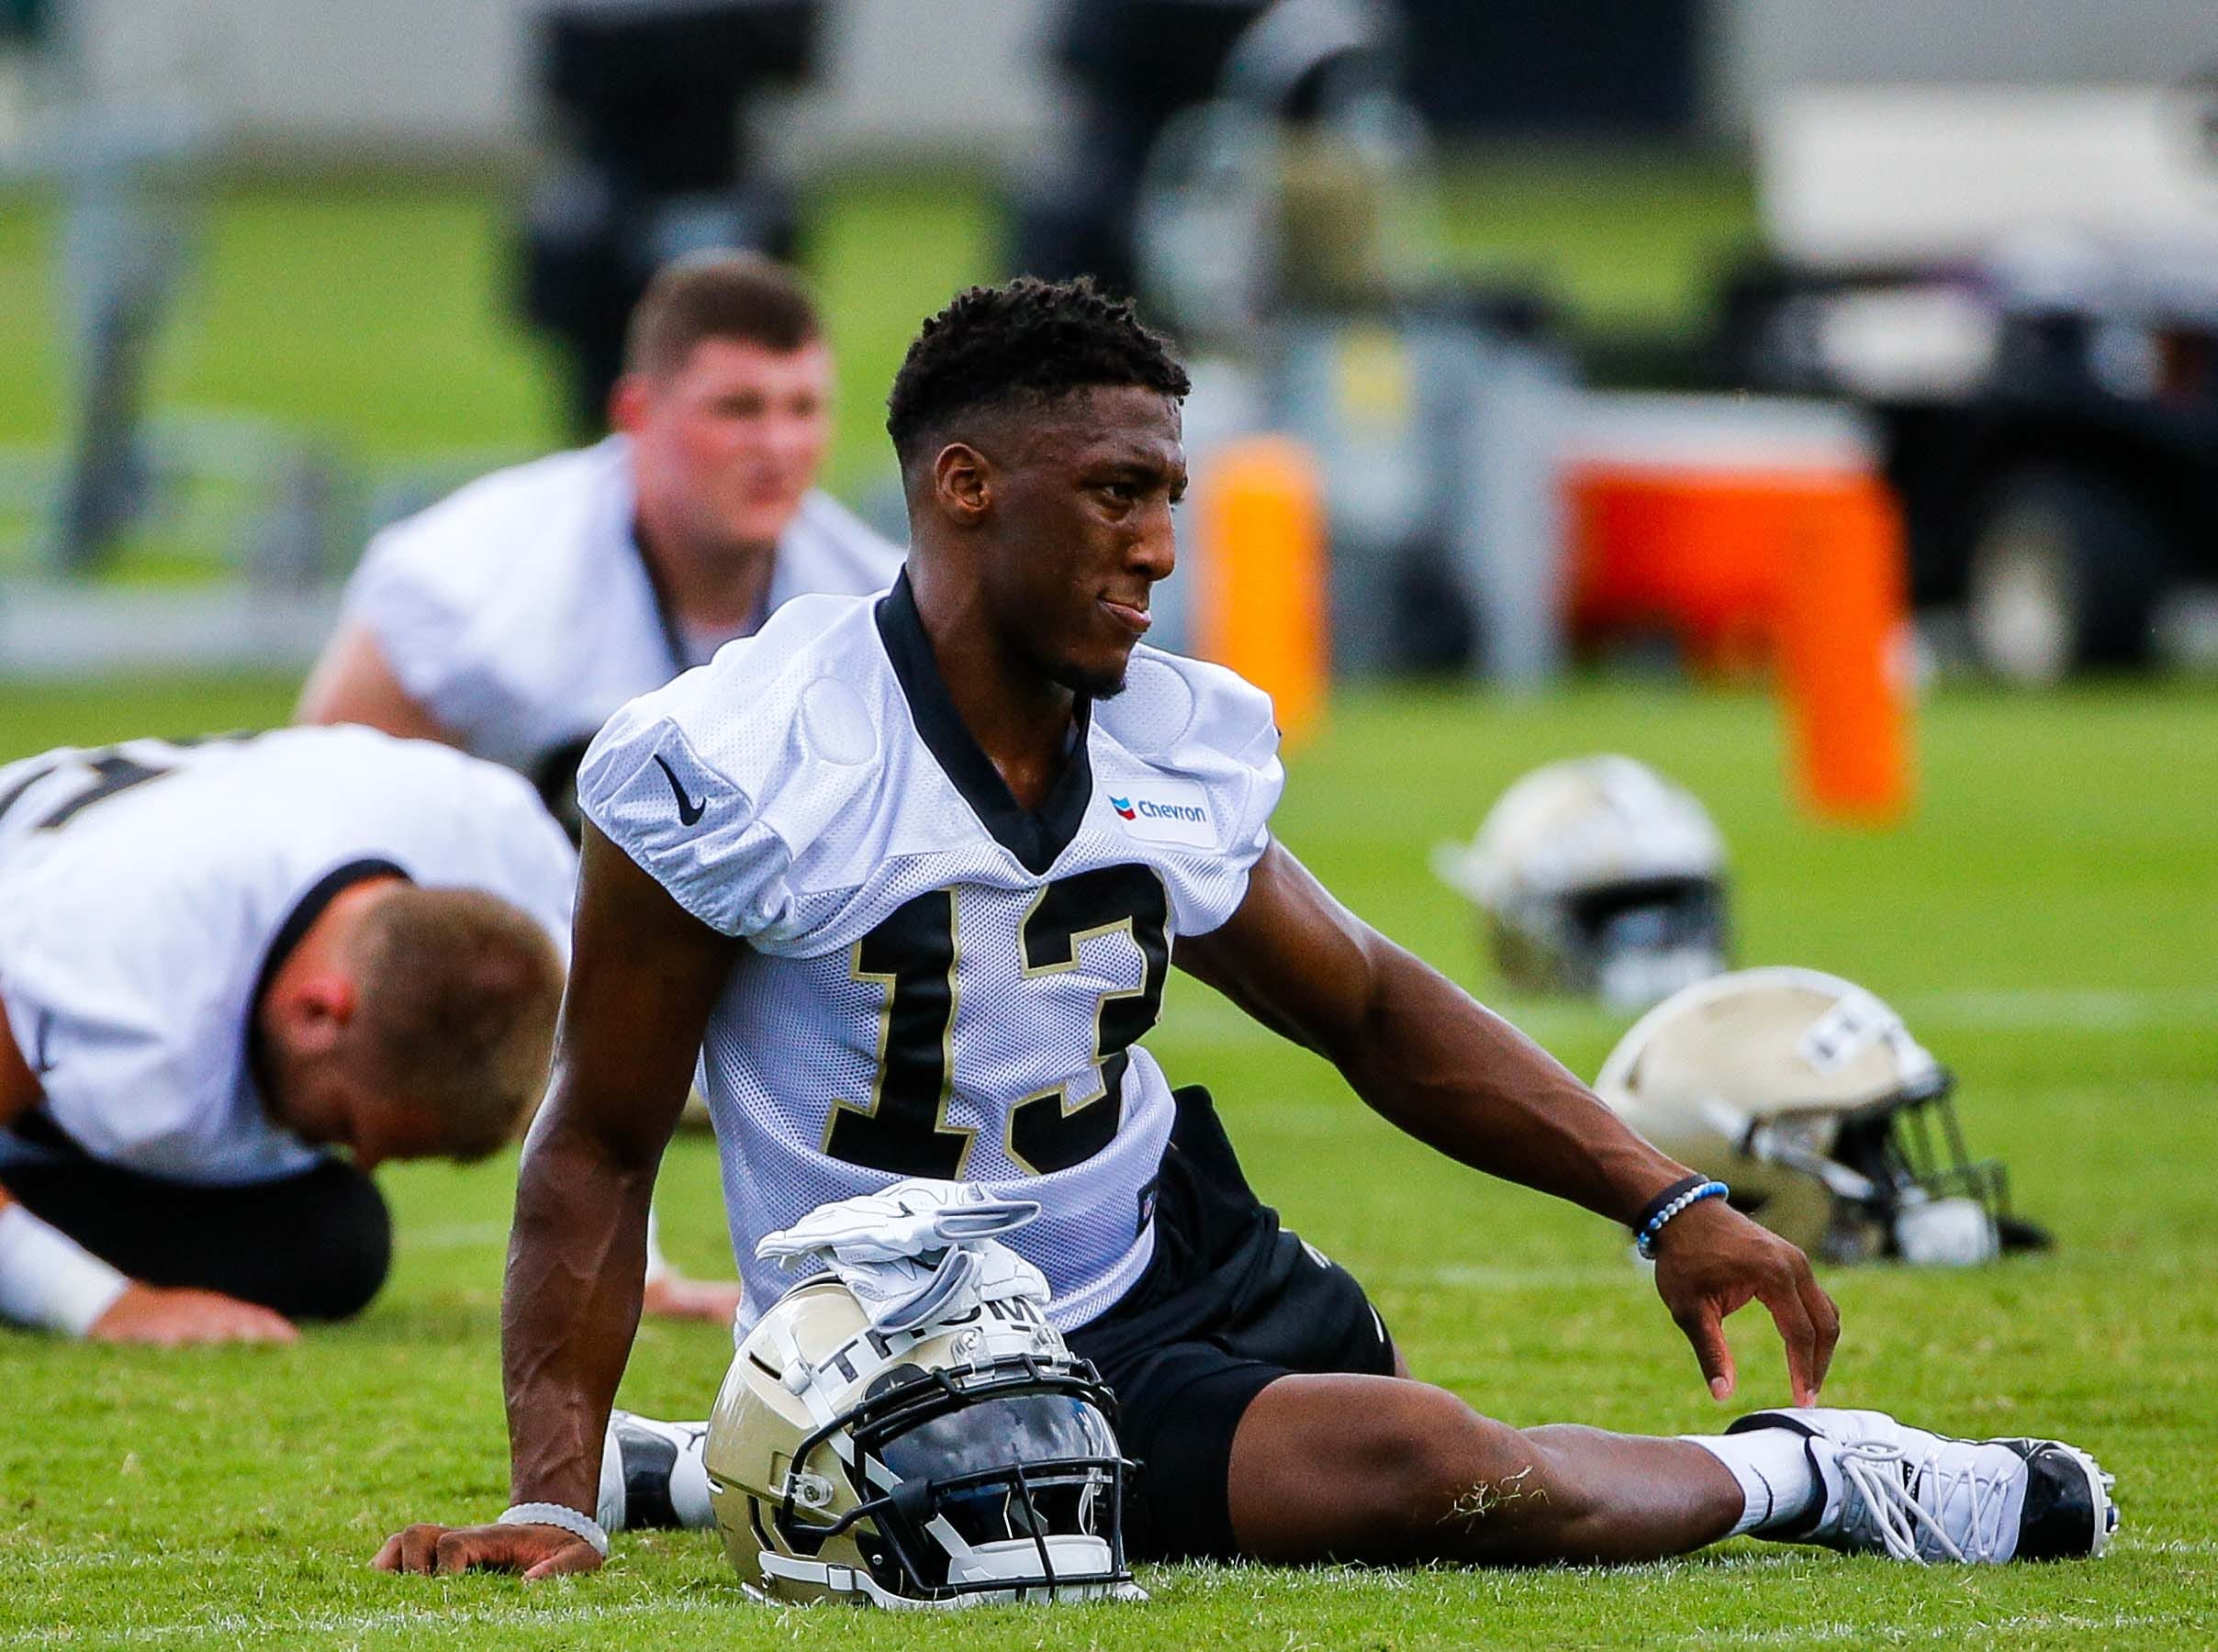 6. Saints (7): Any more underrated player than WR Michael Thomas? He's one key to team with plenty of motivation to overcome 2017's missed opportunity.